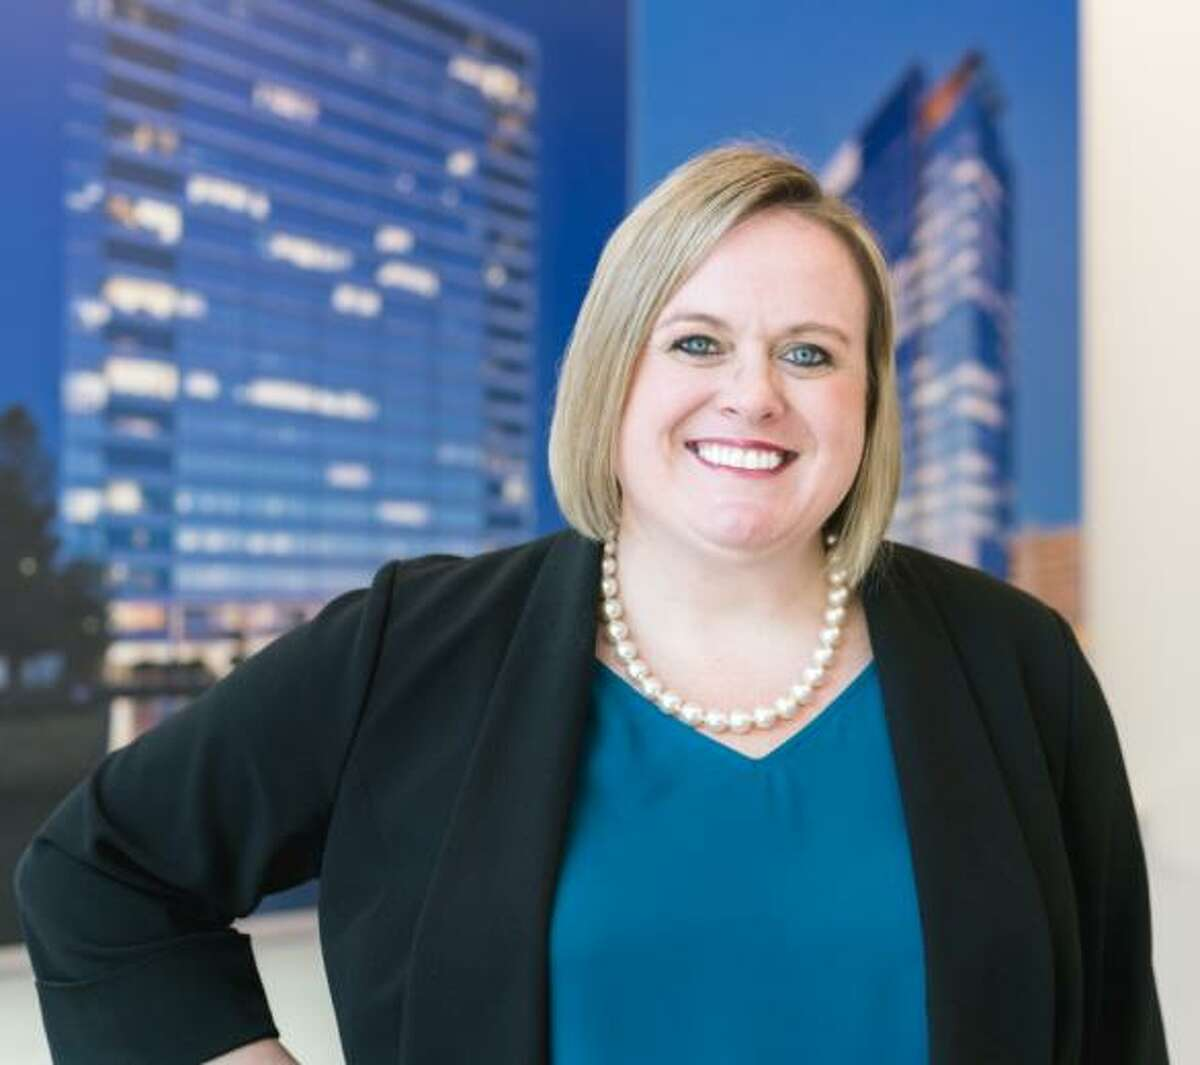 Crystal McDonald has joined Kirksey as chief financial officer and vice president. McDonald brings 15 years of accounting experience in the architectural industry. McDonald�'s experience includes system implementation and developing internal controls, financial planning and budgeting.